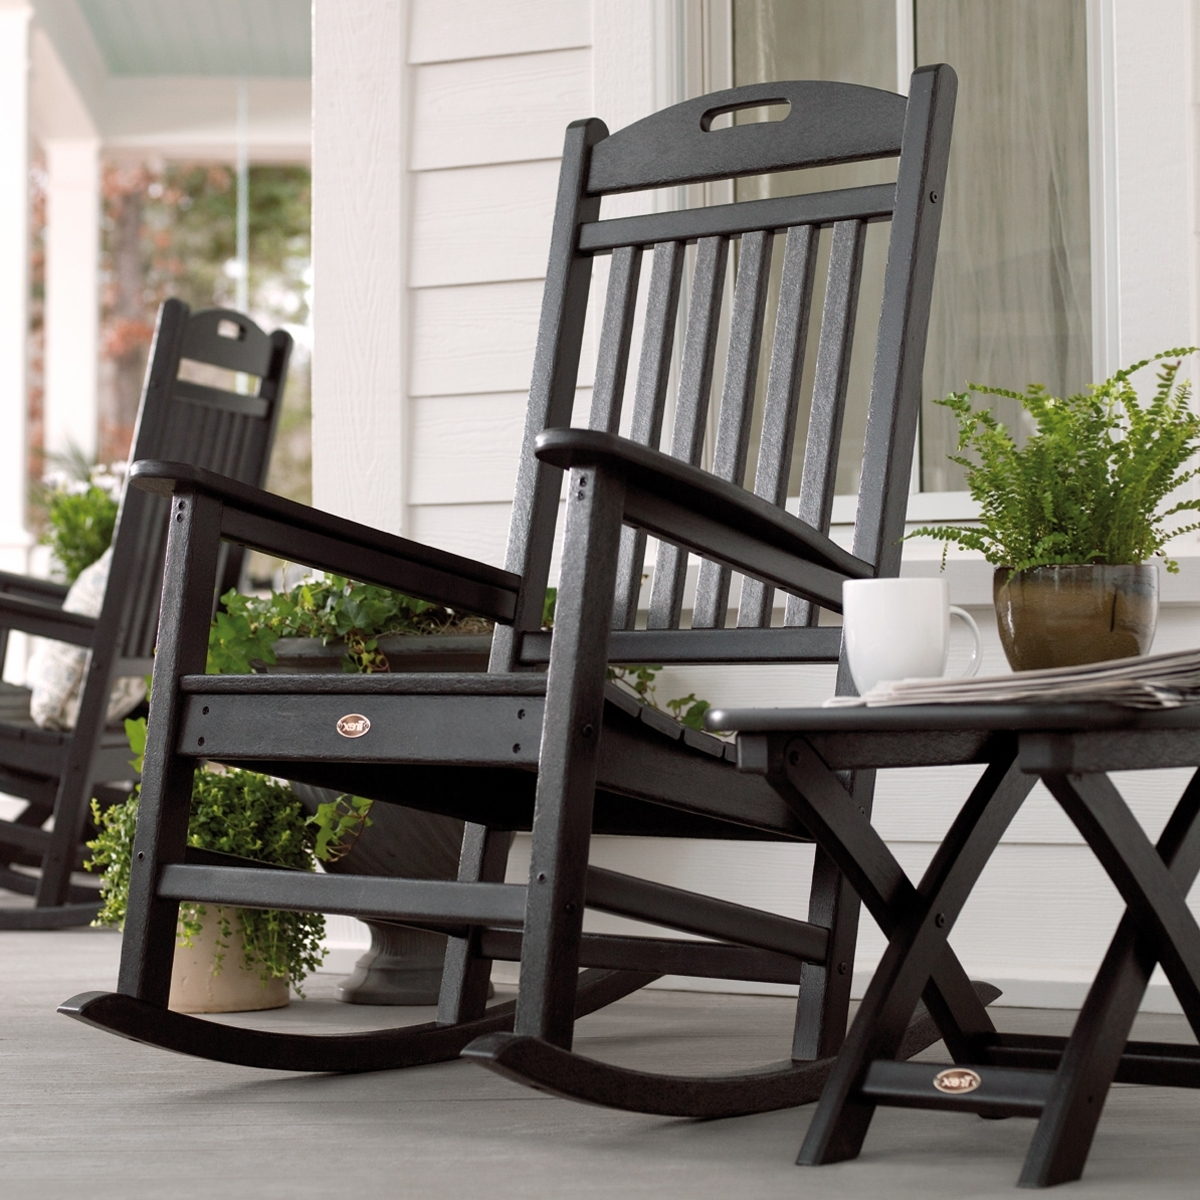 Trex Outdoor Furniture Txr100 Yacht Club Outdoor Rocking Chair Regarding Most Up To Date Rona Patio Rocking Chairs (View 9 of 20)